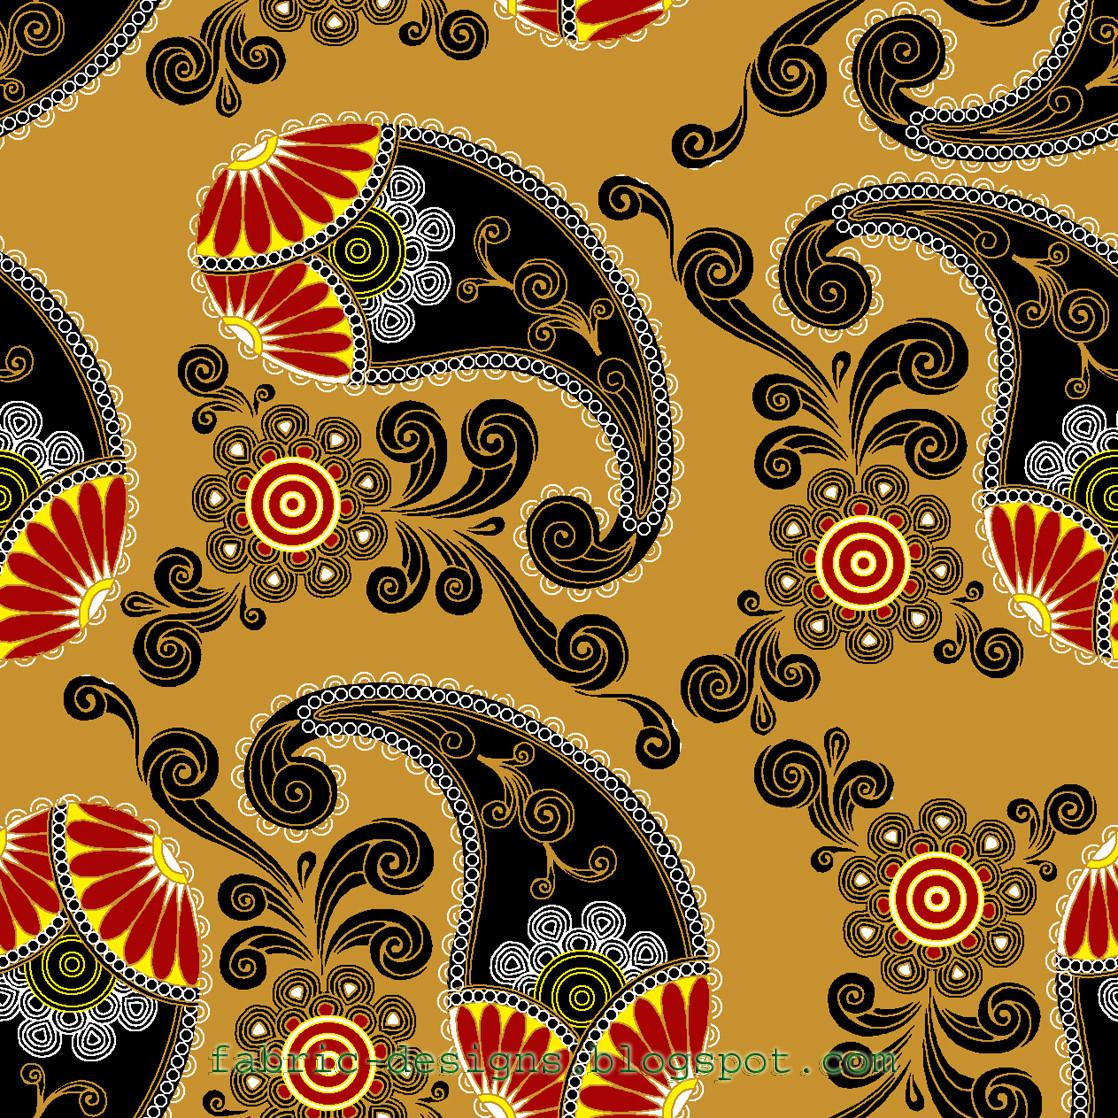 Fabric Designs Patterns Textile Royalty